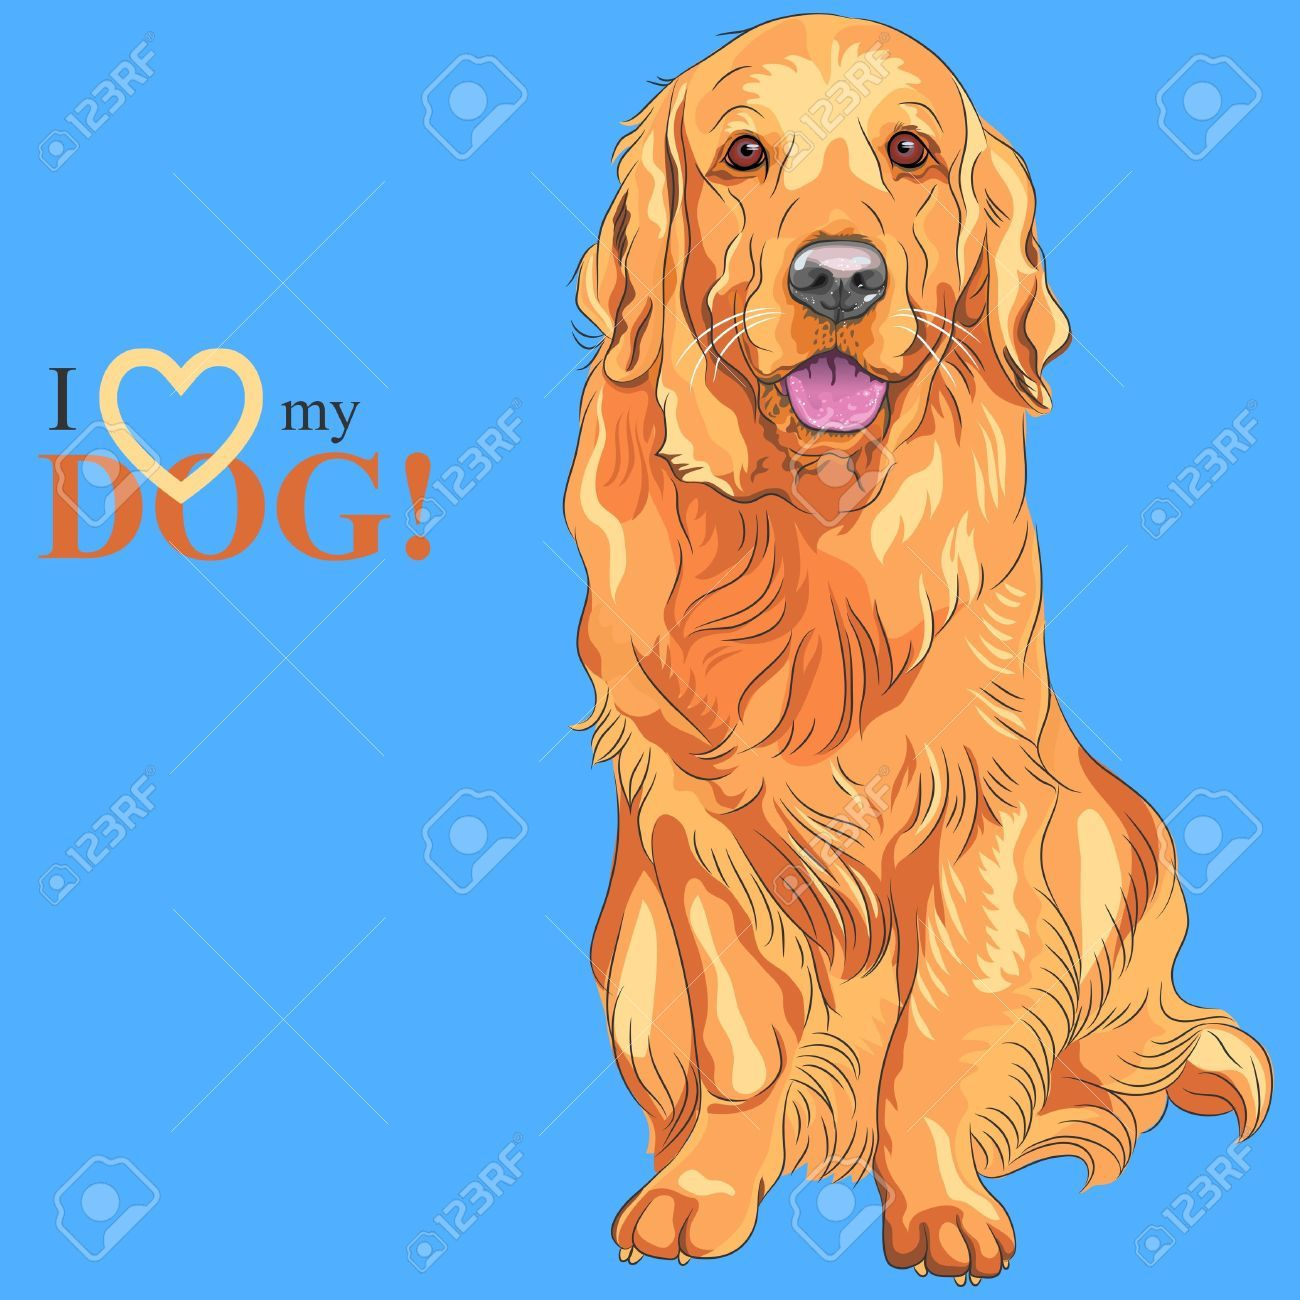 Labrador Retriever Cliparts Stock Vector And Royalty Free Labrador Retriever Illustrations Golden Retriever Breed Dogs Golden Retriever Golden Retriever